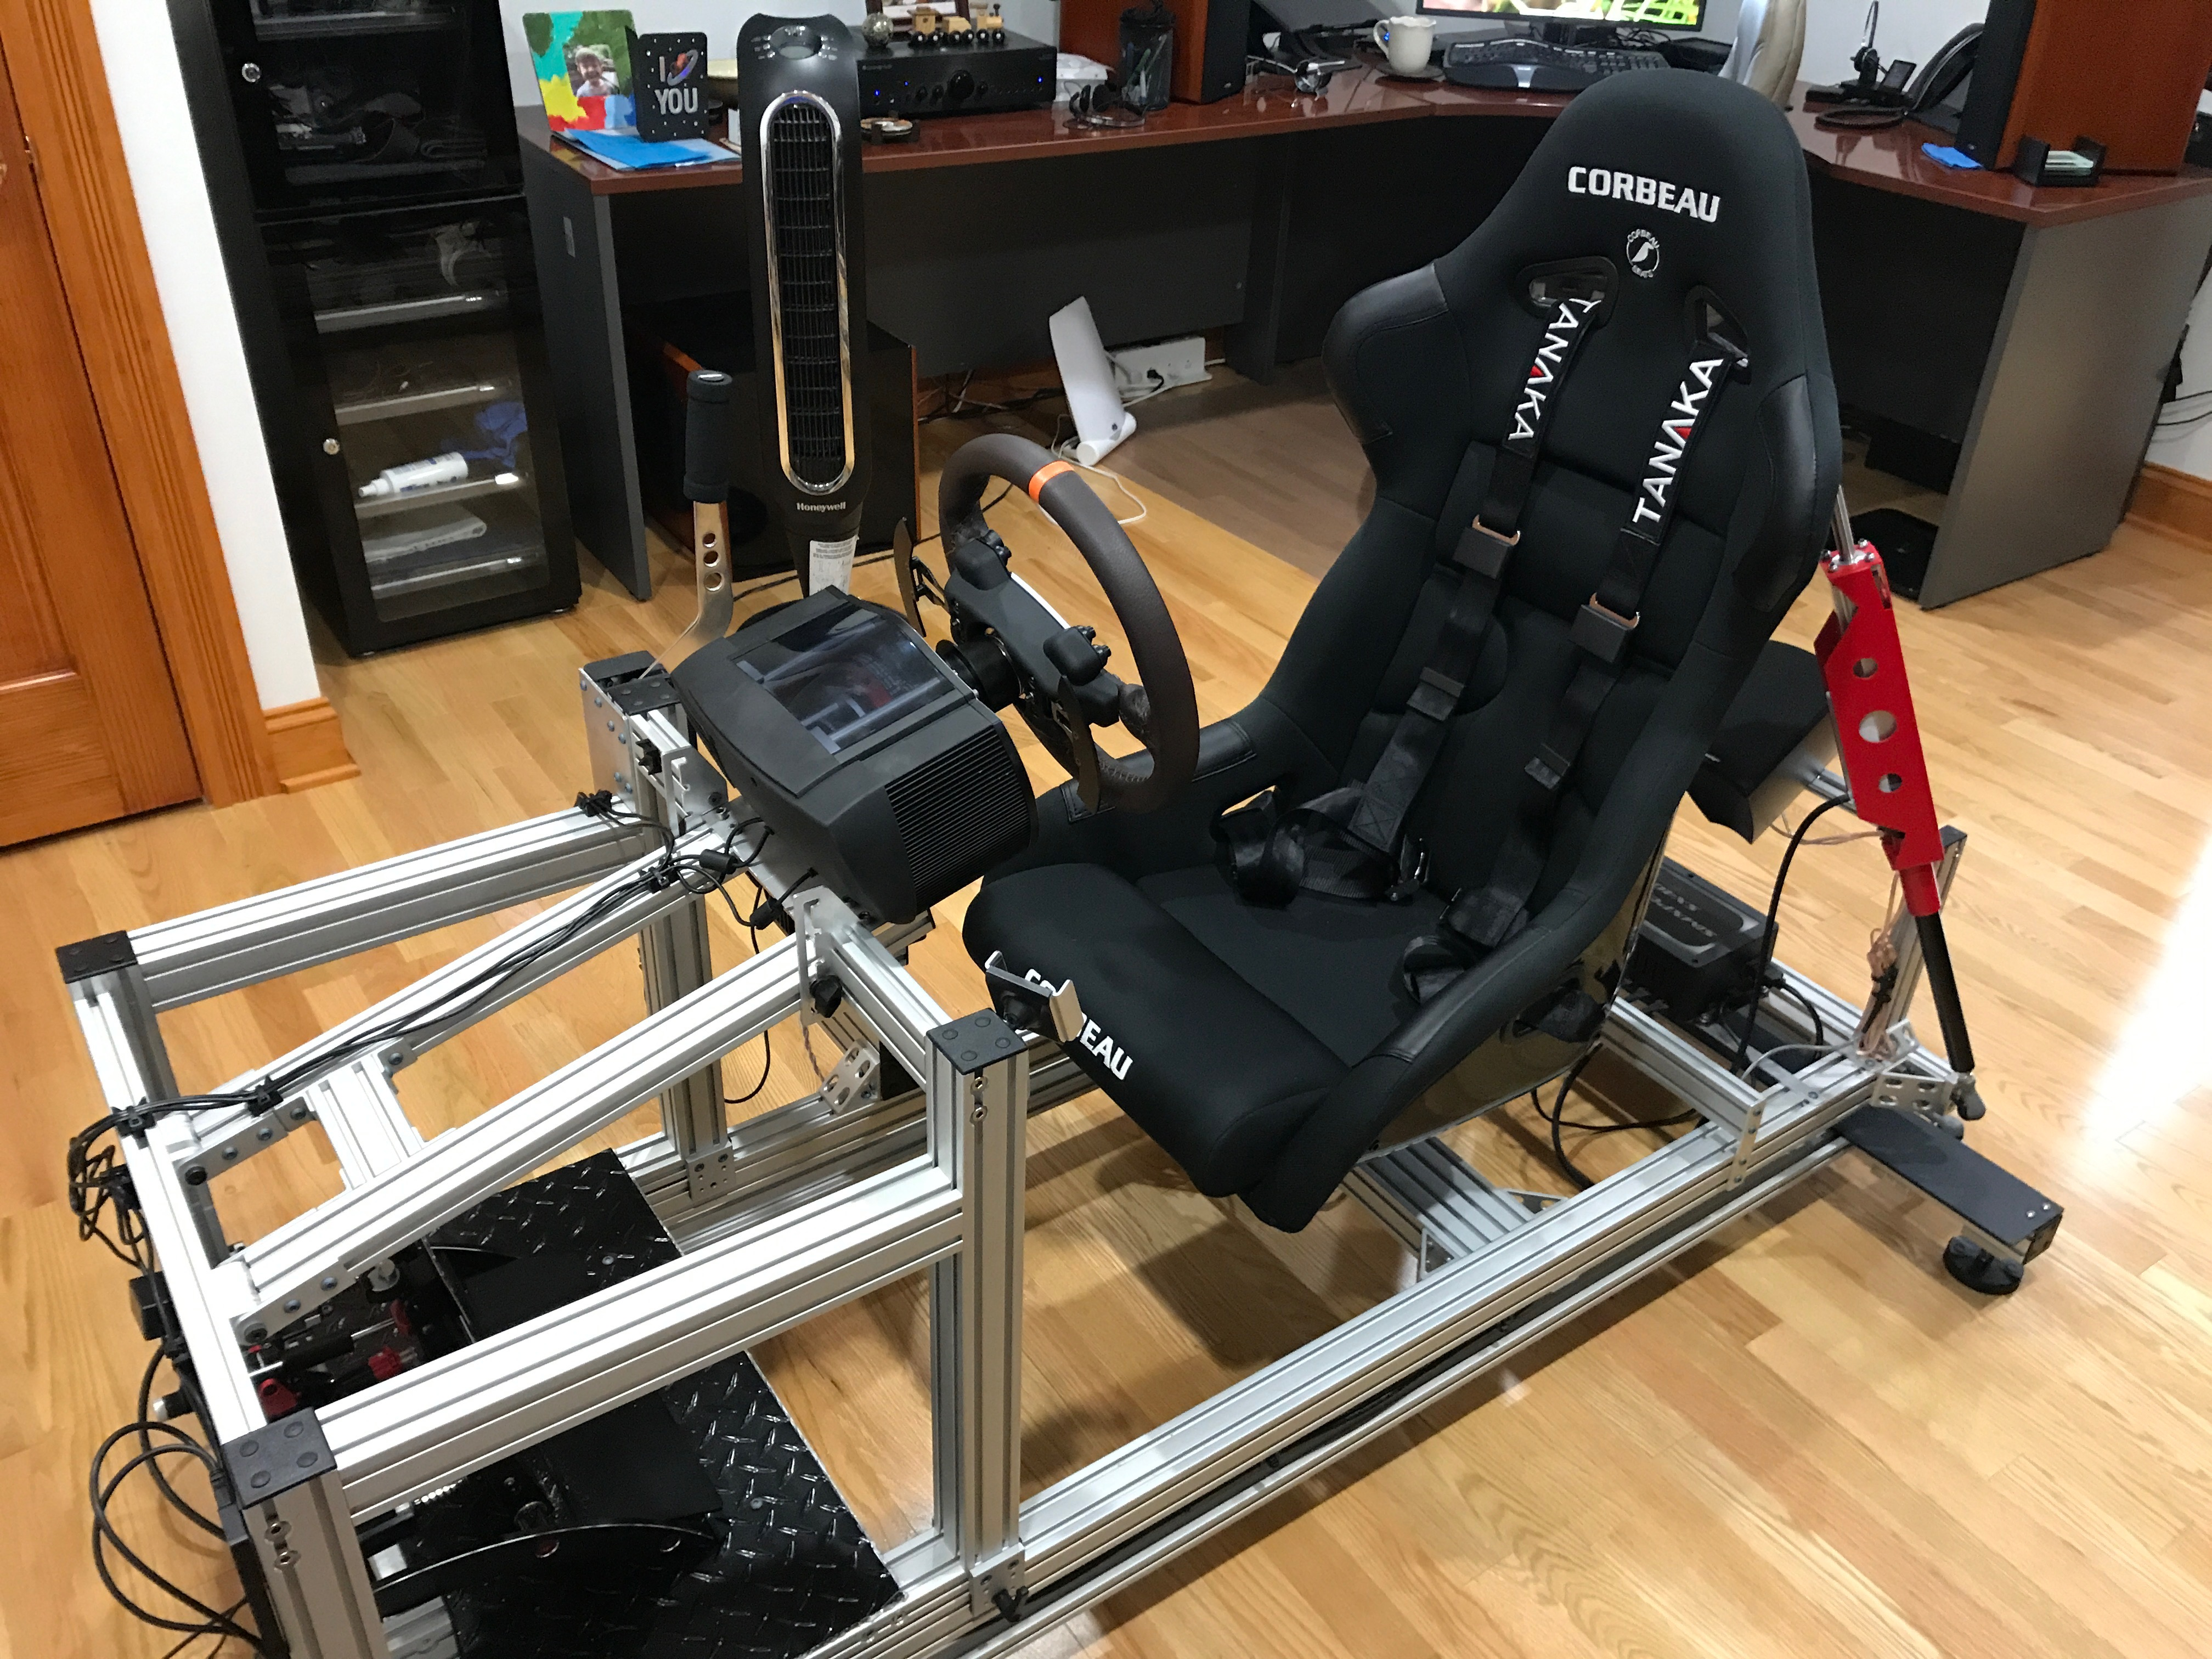 racing simulator chair plans portable lounge chairs my sim motion rig version 2 daniel chote s project blog i cnced a small bracket to mount the springs 80 20 other side of went on harness rear mounts and